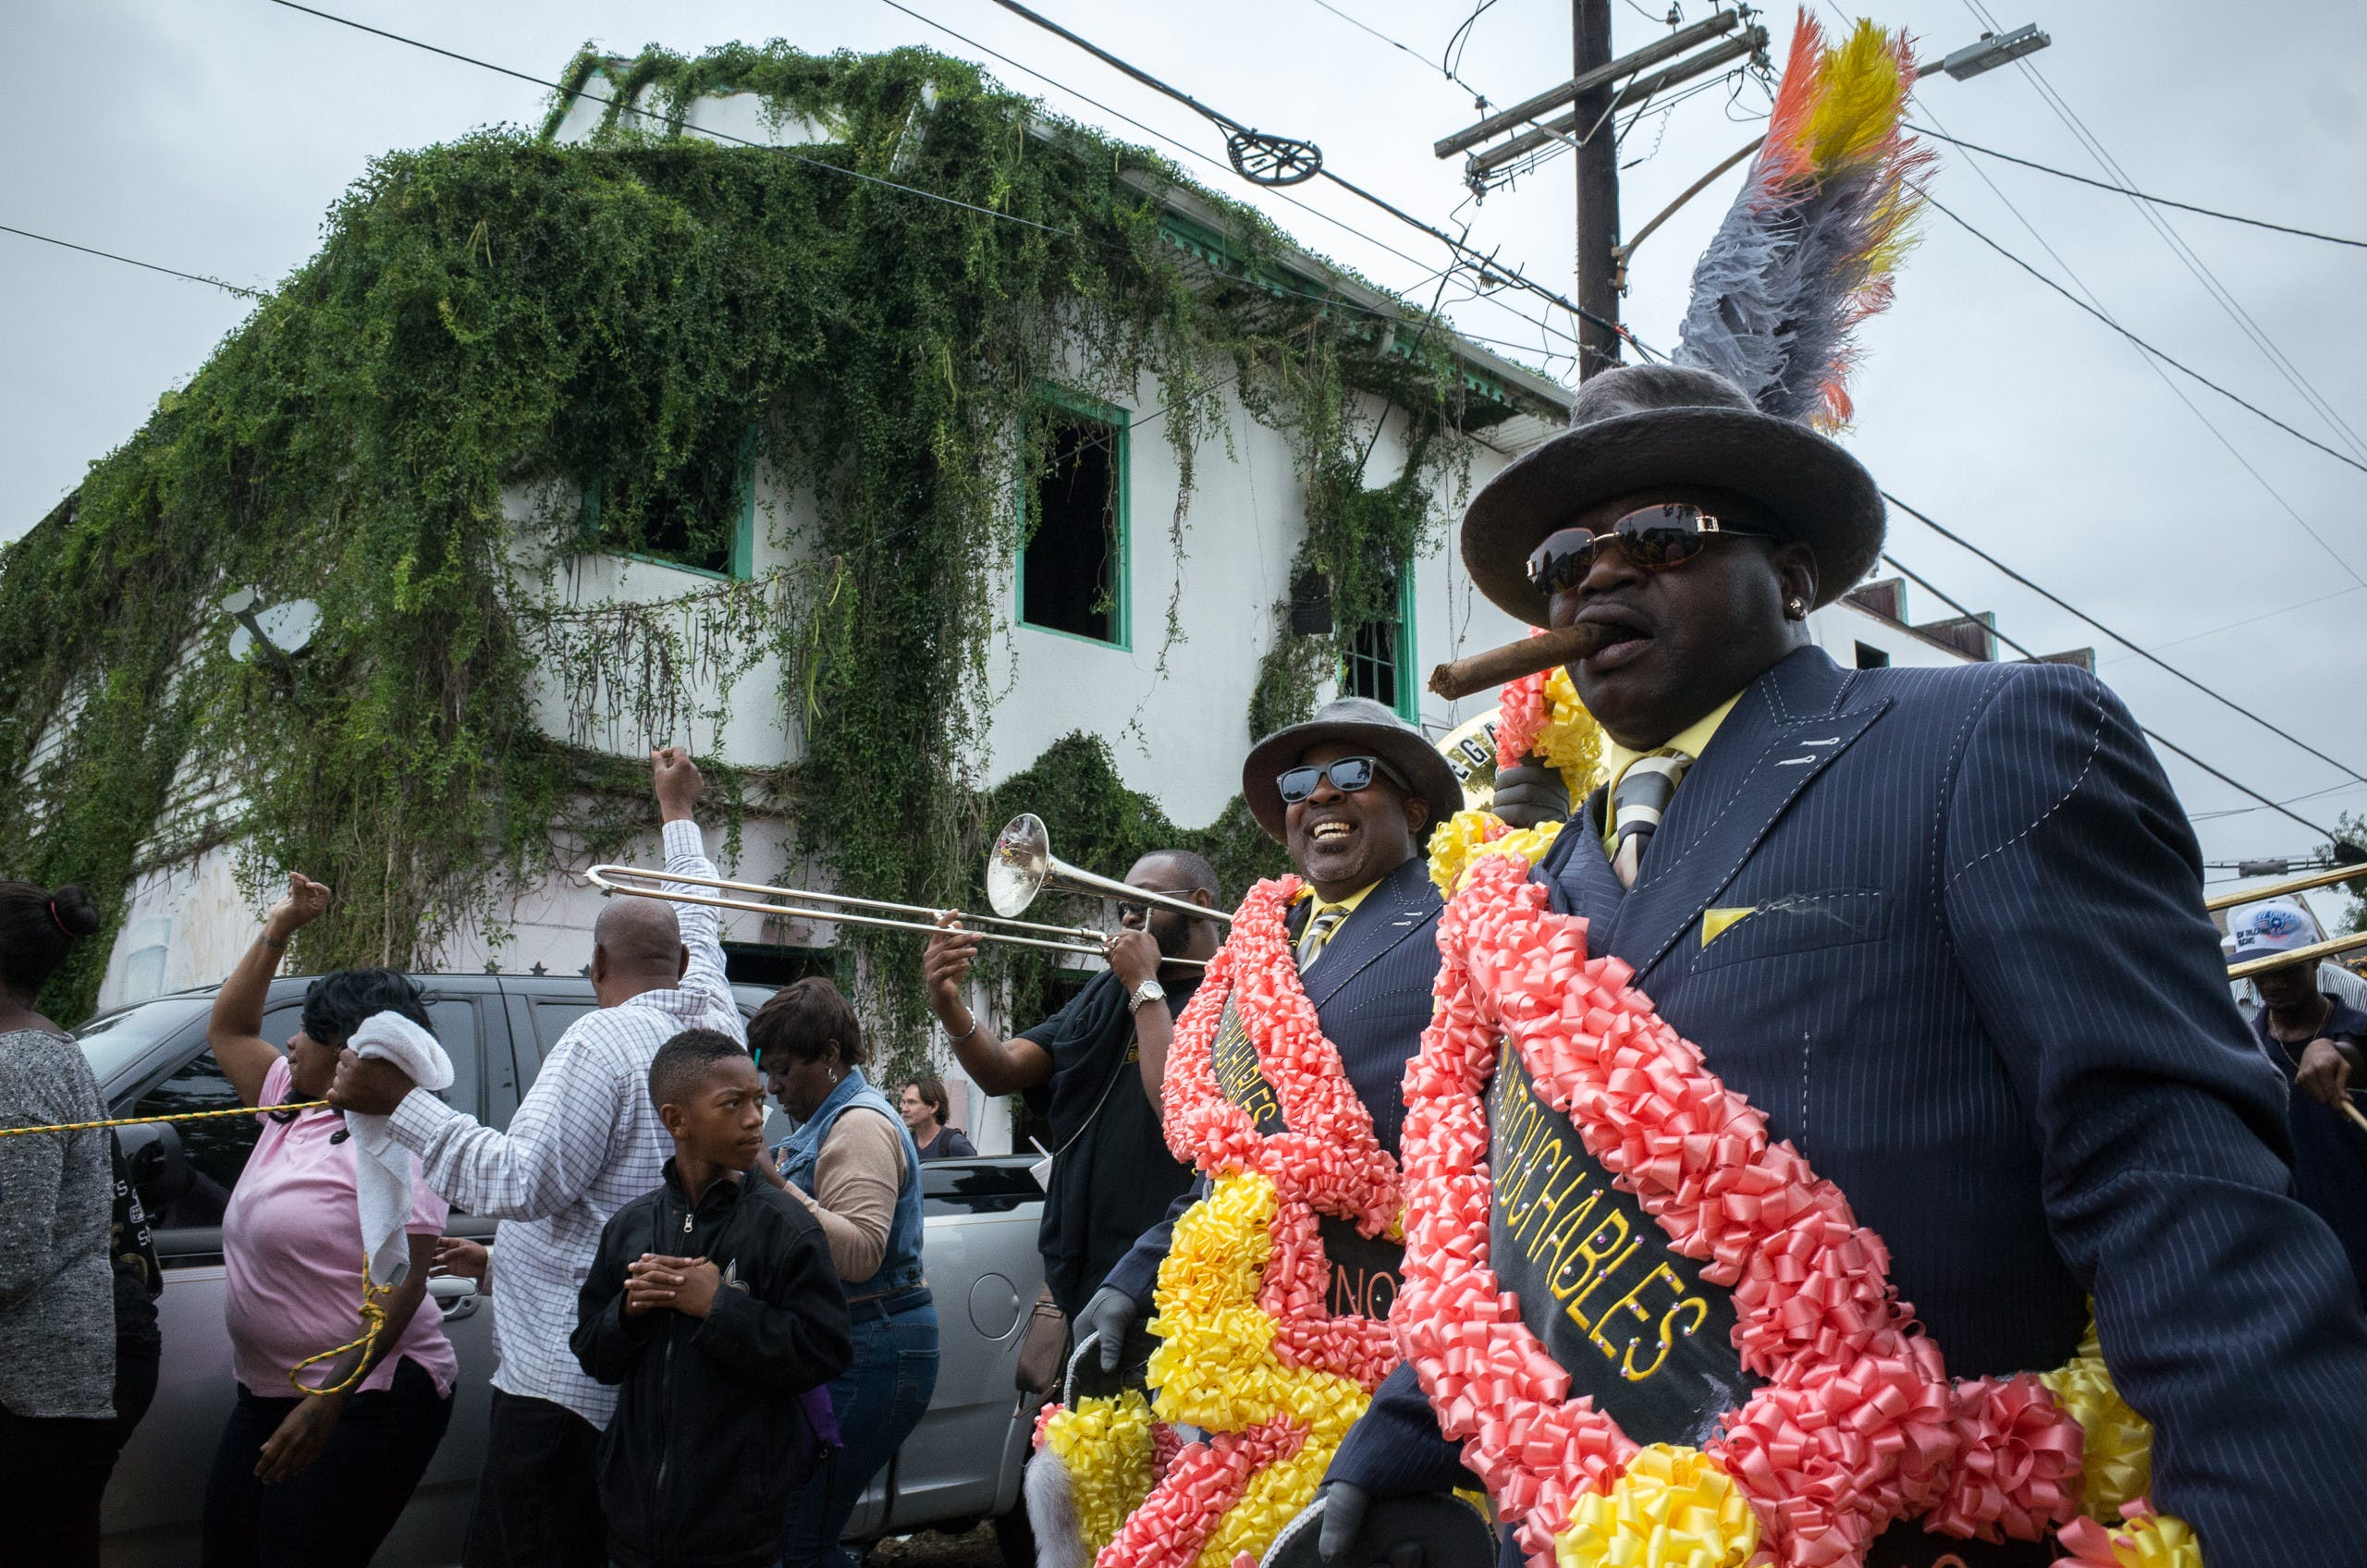 Things you didn't know about Mardi Gras